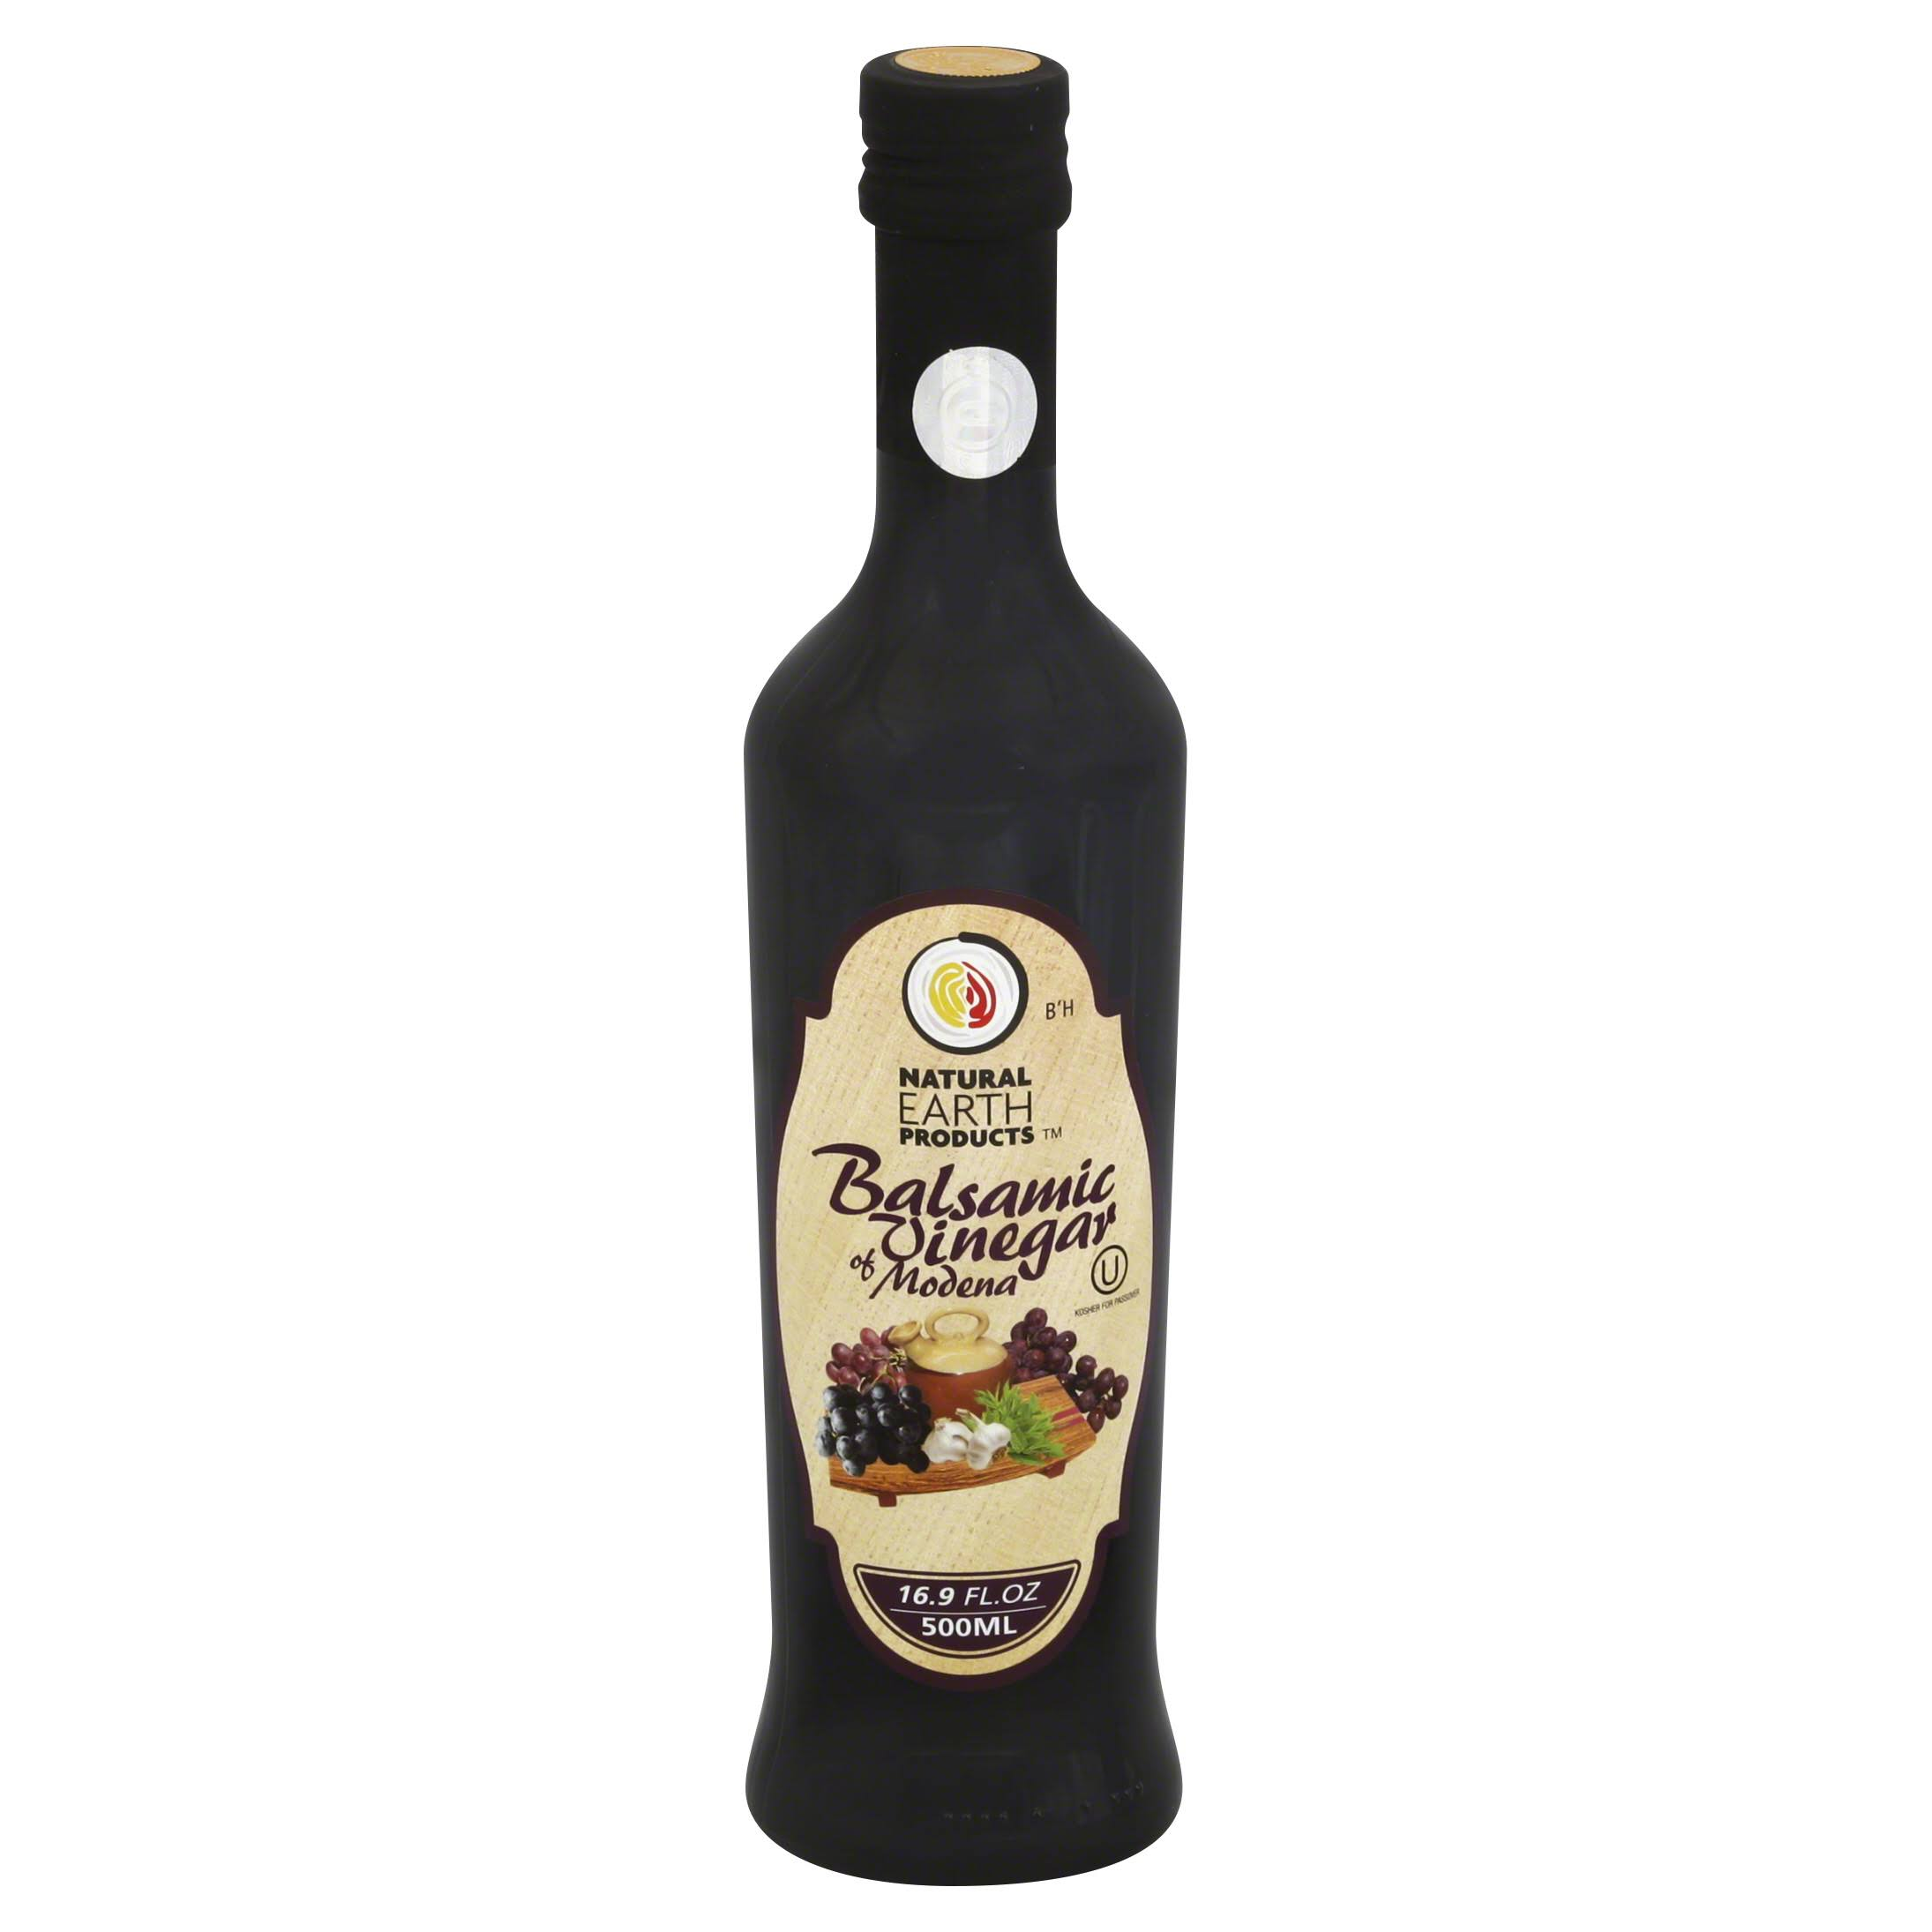 Natural Earth Products Vinegar, Balsamic, of Modena - 16.9 fl oz